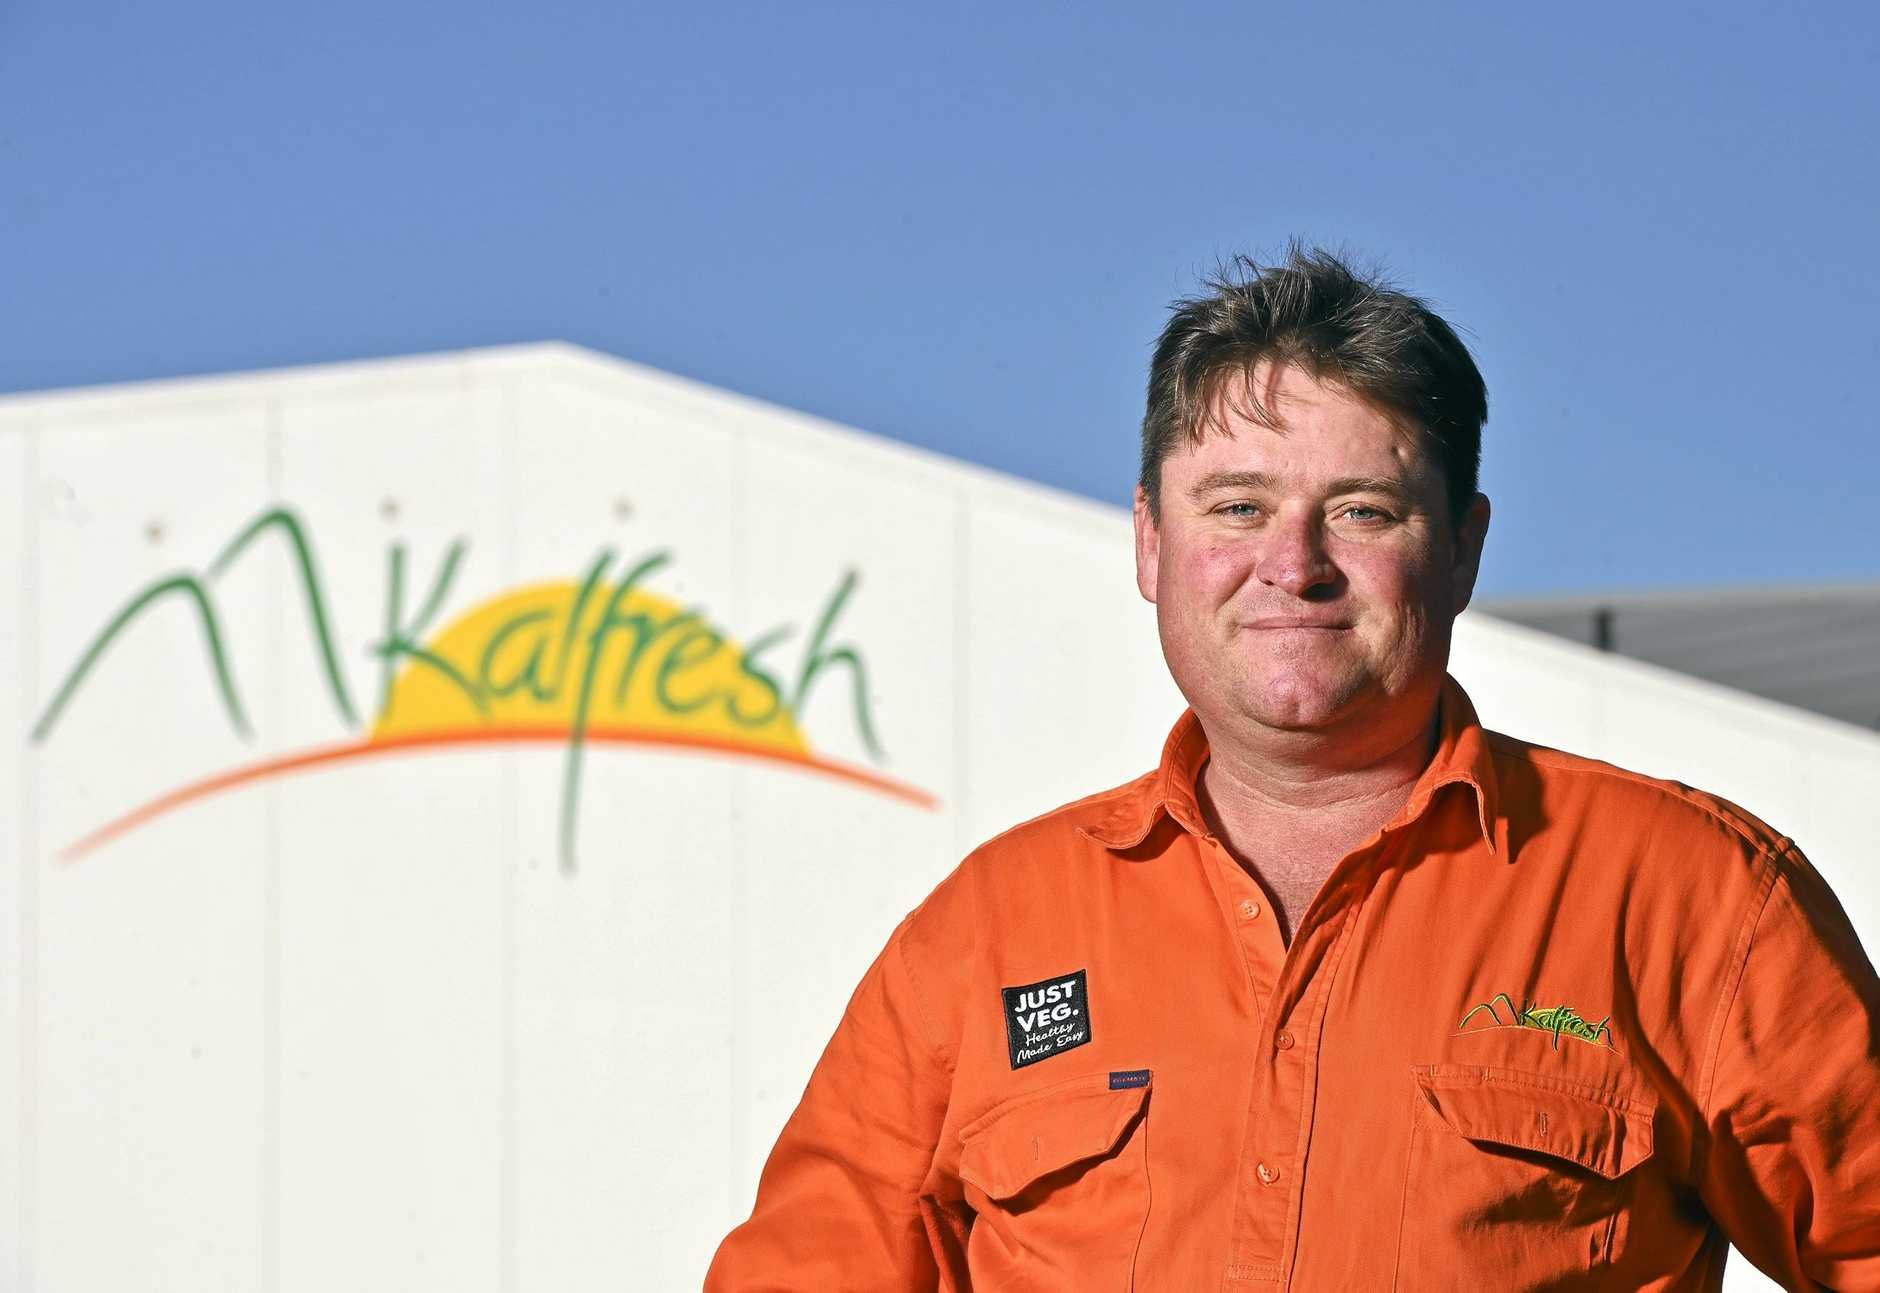 Kalfresh Managing Director Richard Gorman.